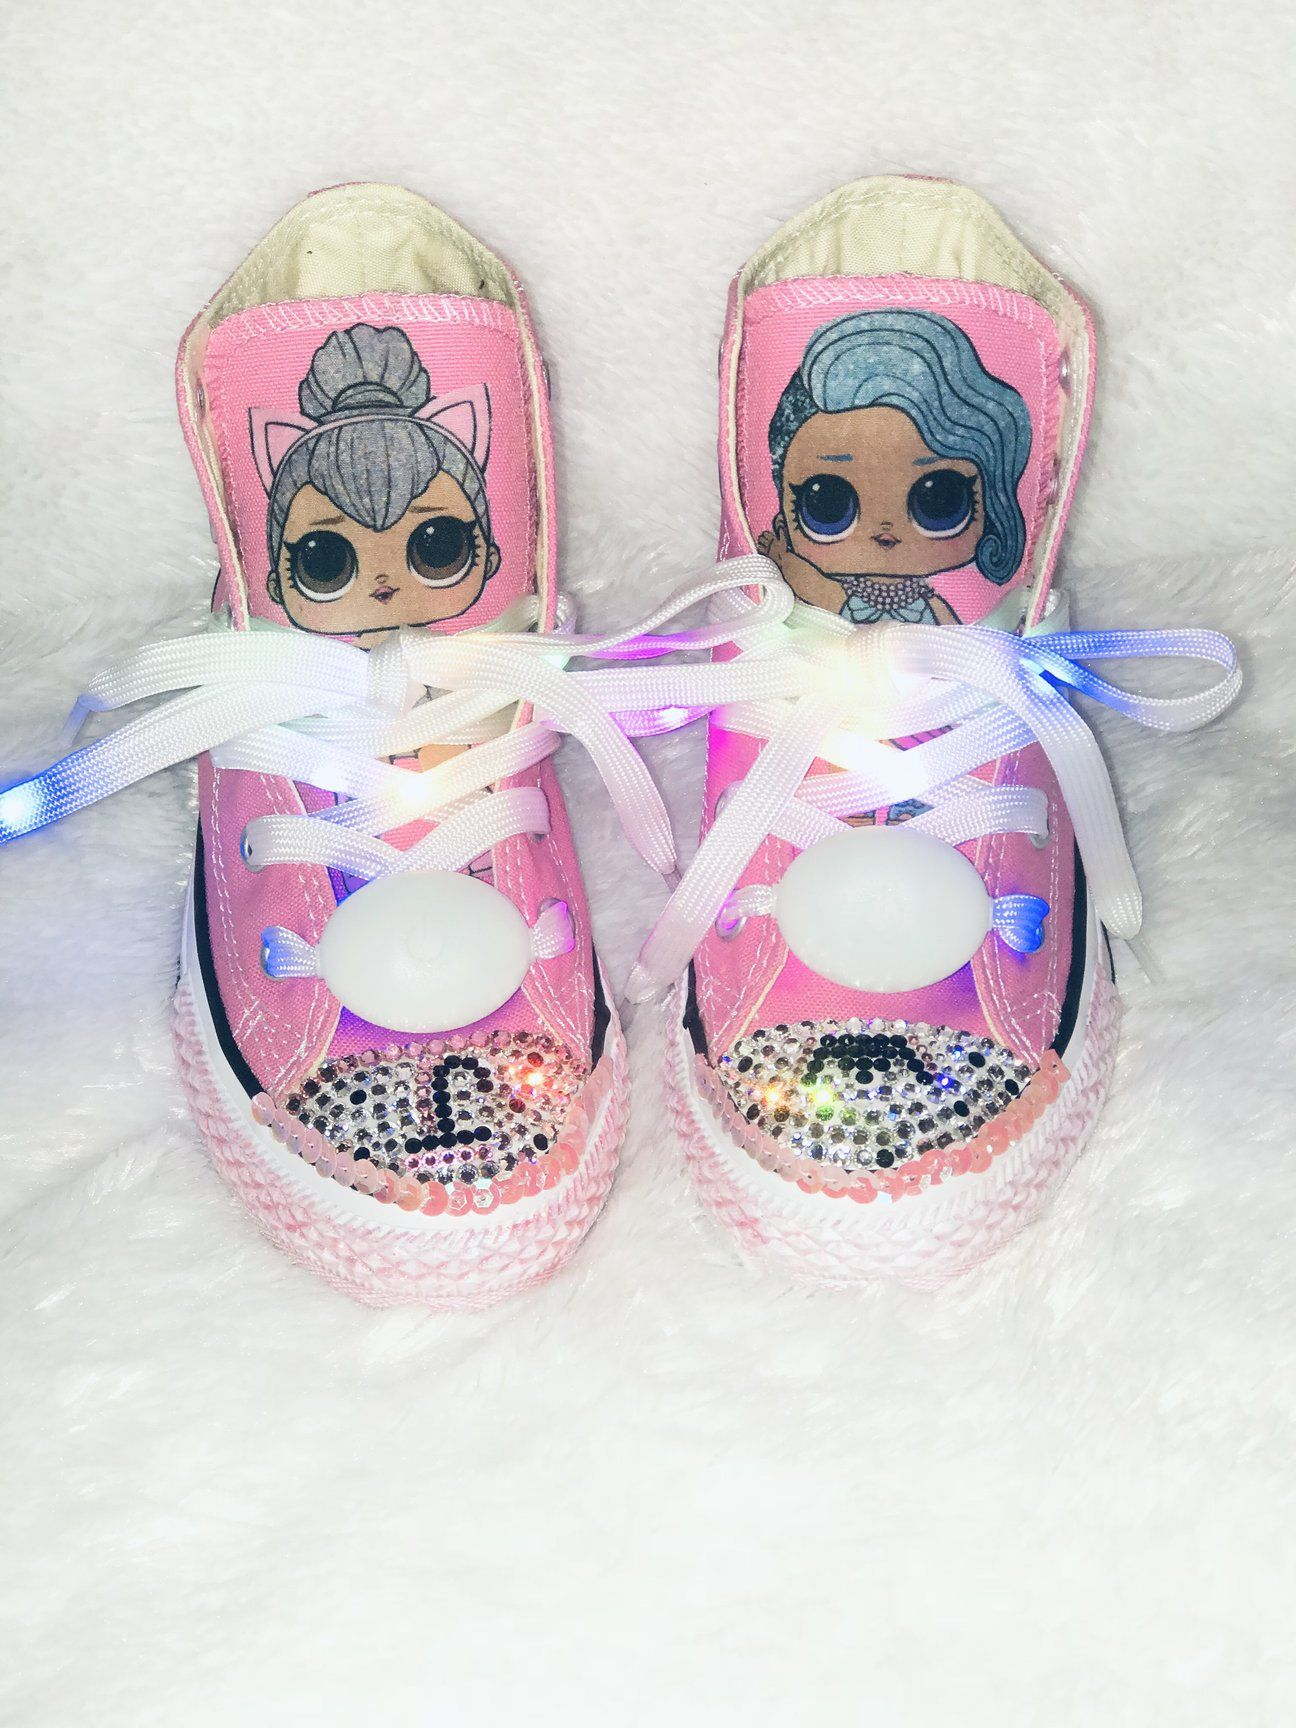 acc0573ec5ec TaylorsPenny Bling Converse  Bling Sneakers for toddlers Supergirl  Birthday  Sparkly Sneakers  Kids fashion  Bling Sneakers for toddlers  NYC  Designer  ...